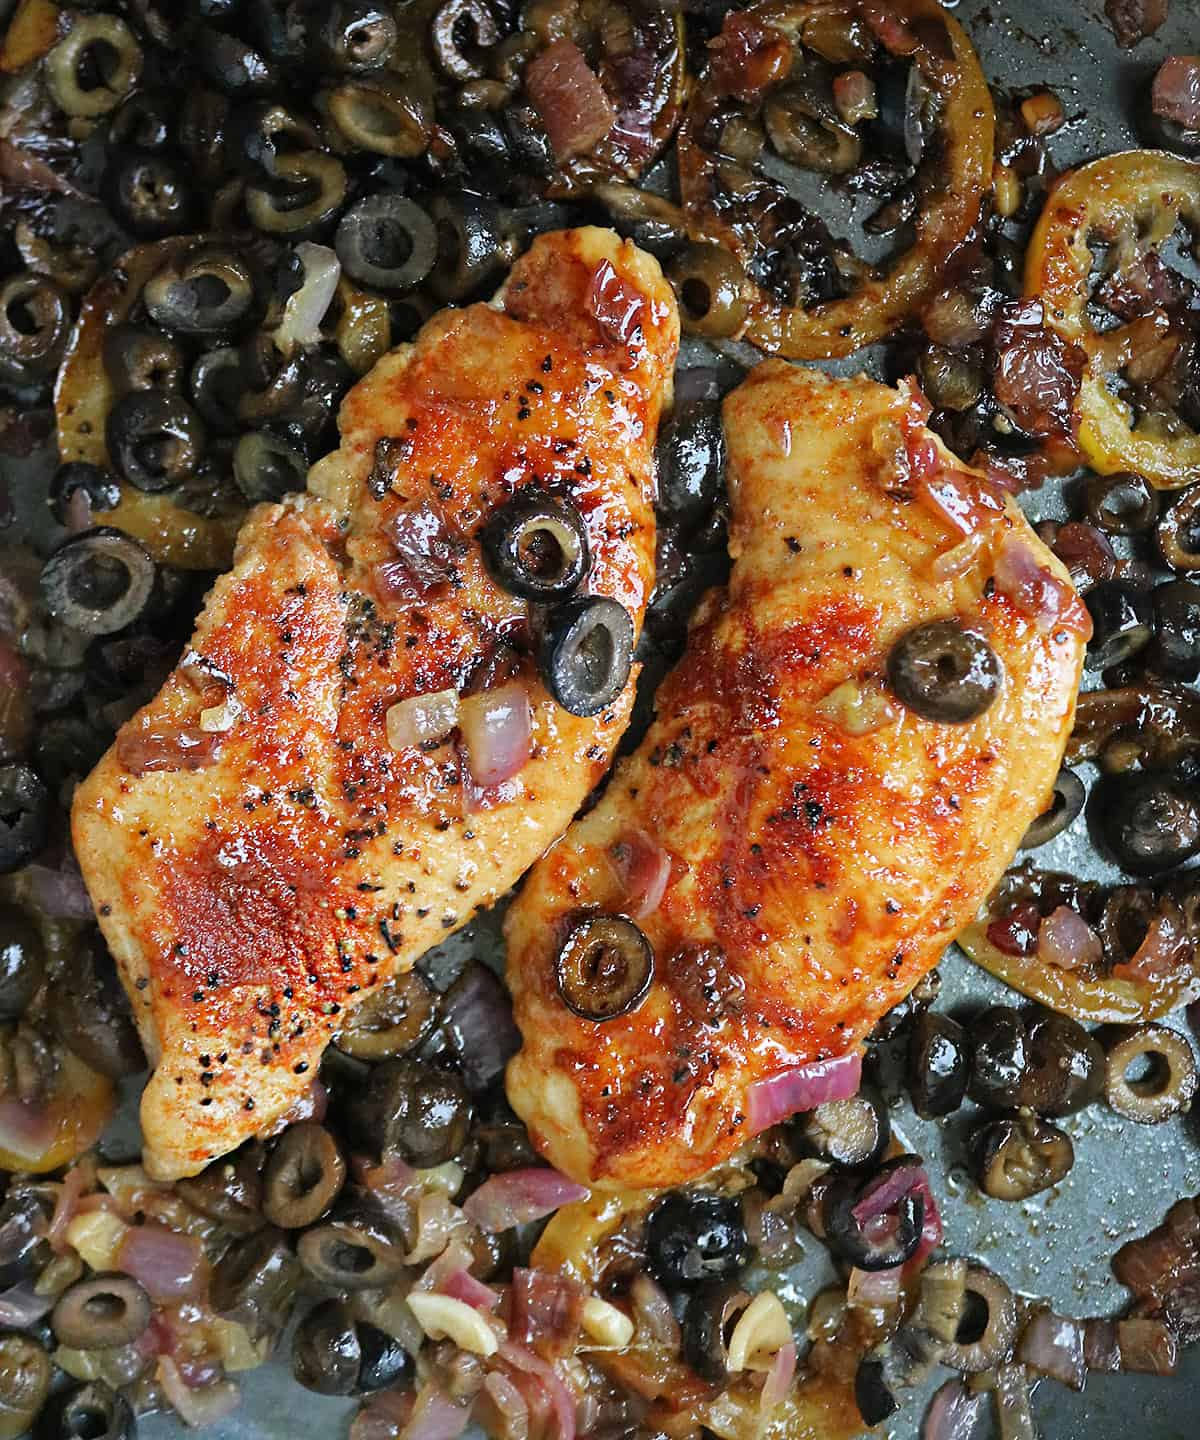 Delicious honey lemon chicken sauteing in pan with olives and caramelize lemon slices